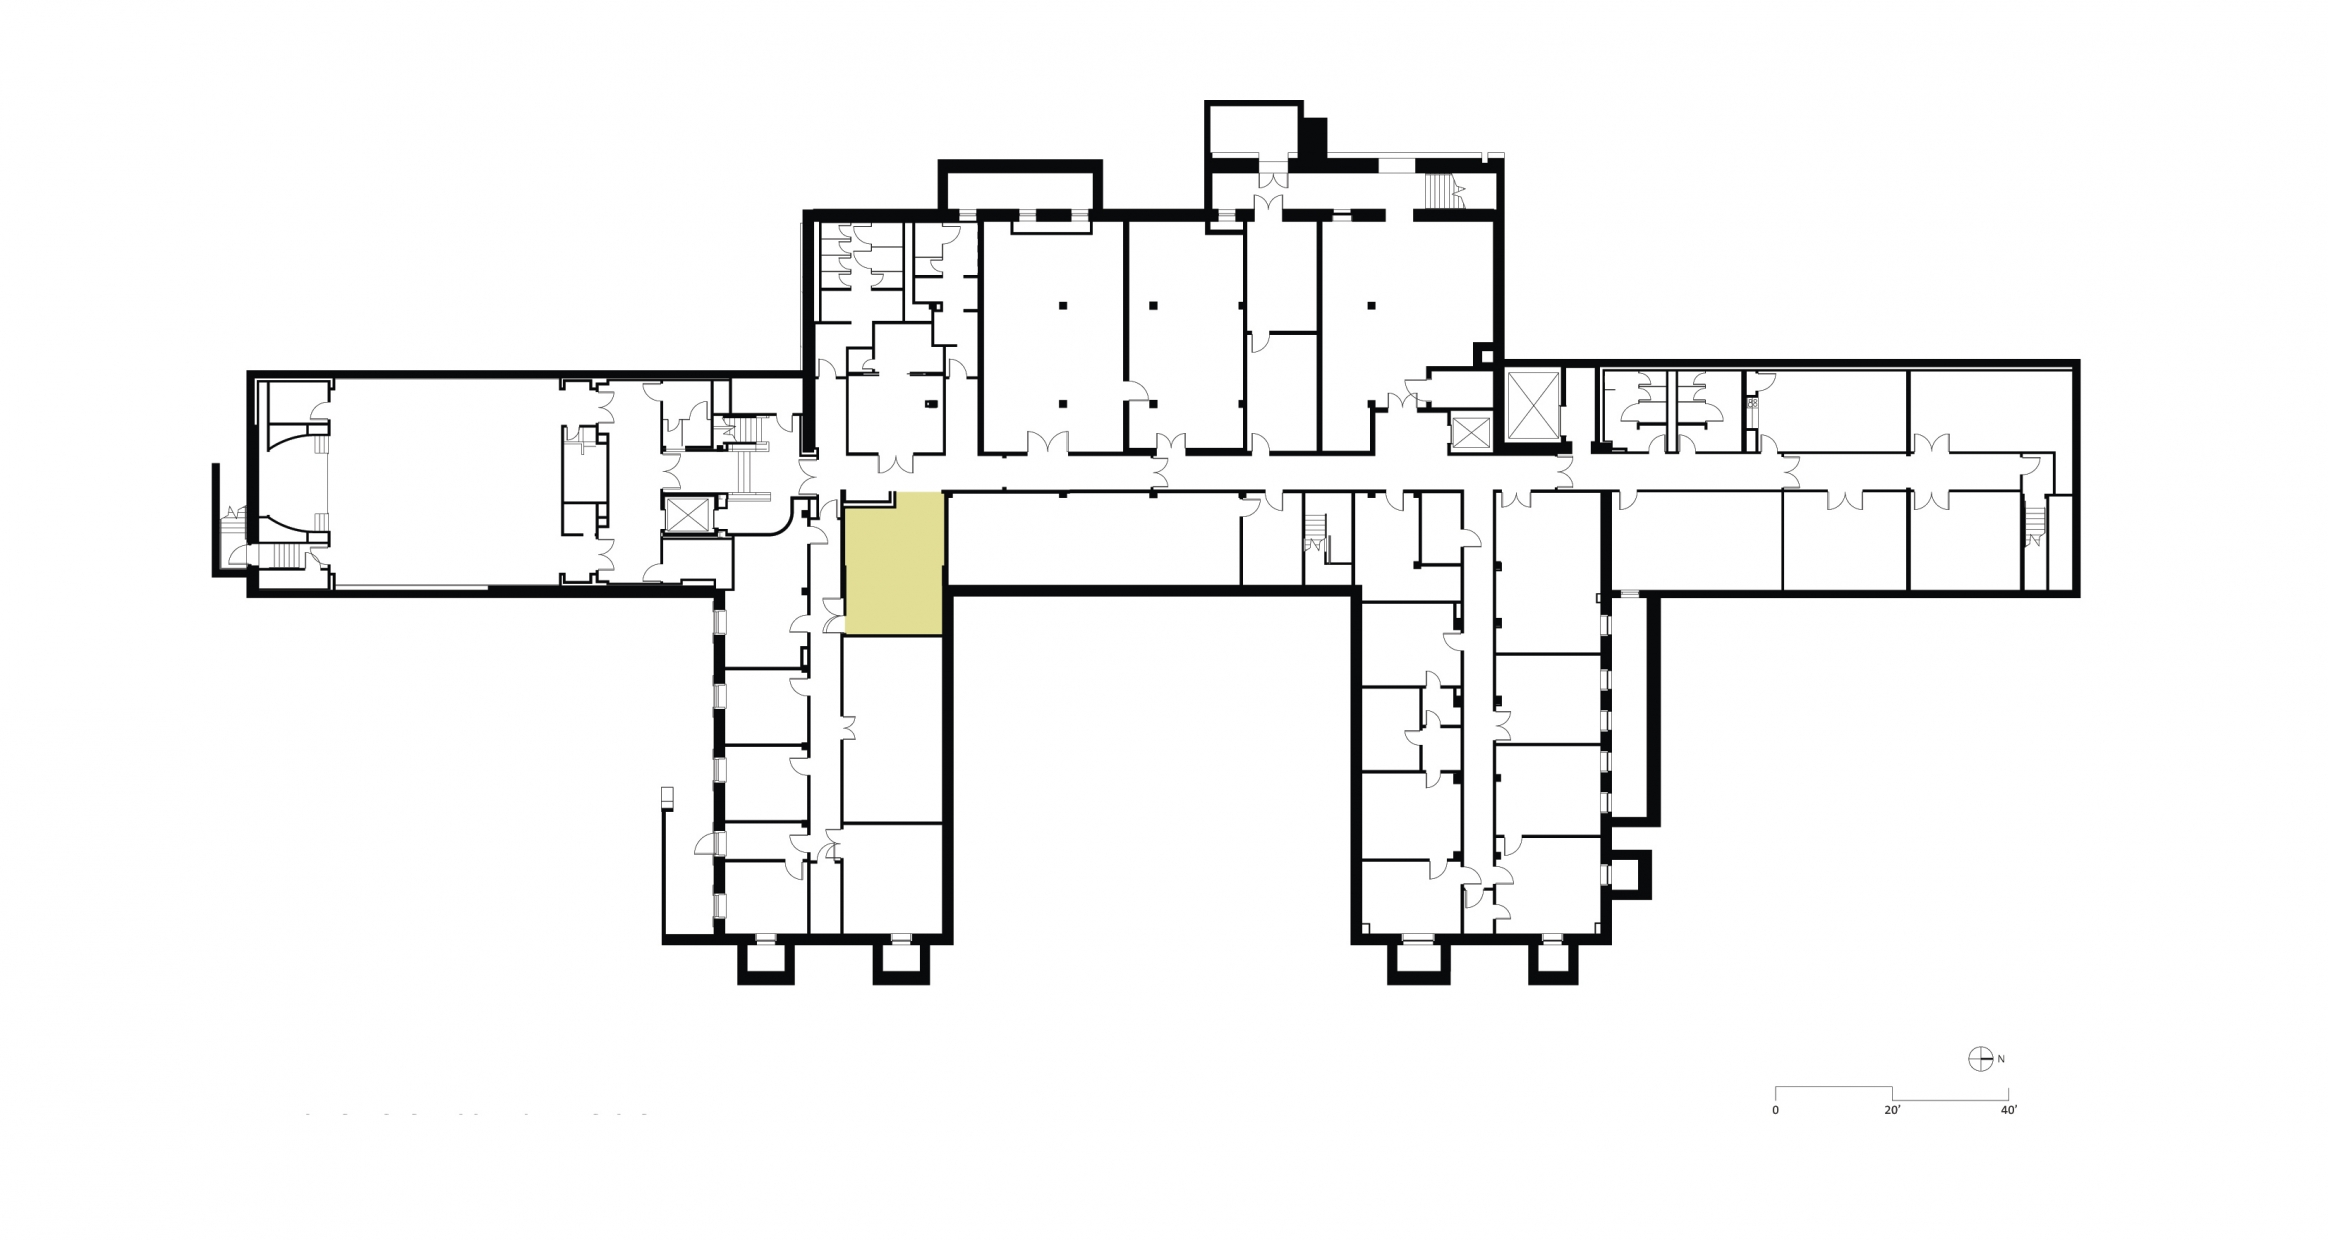 Floor plan before renovation